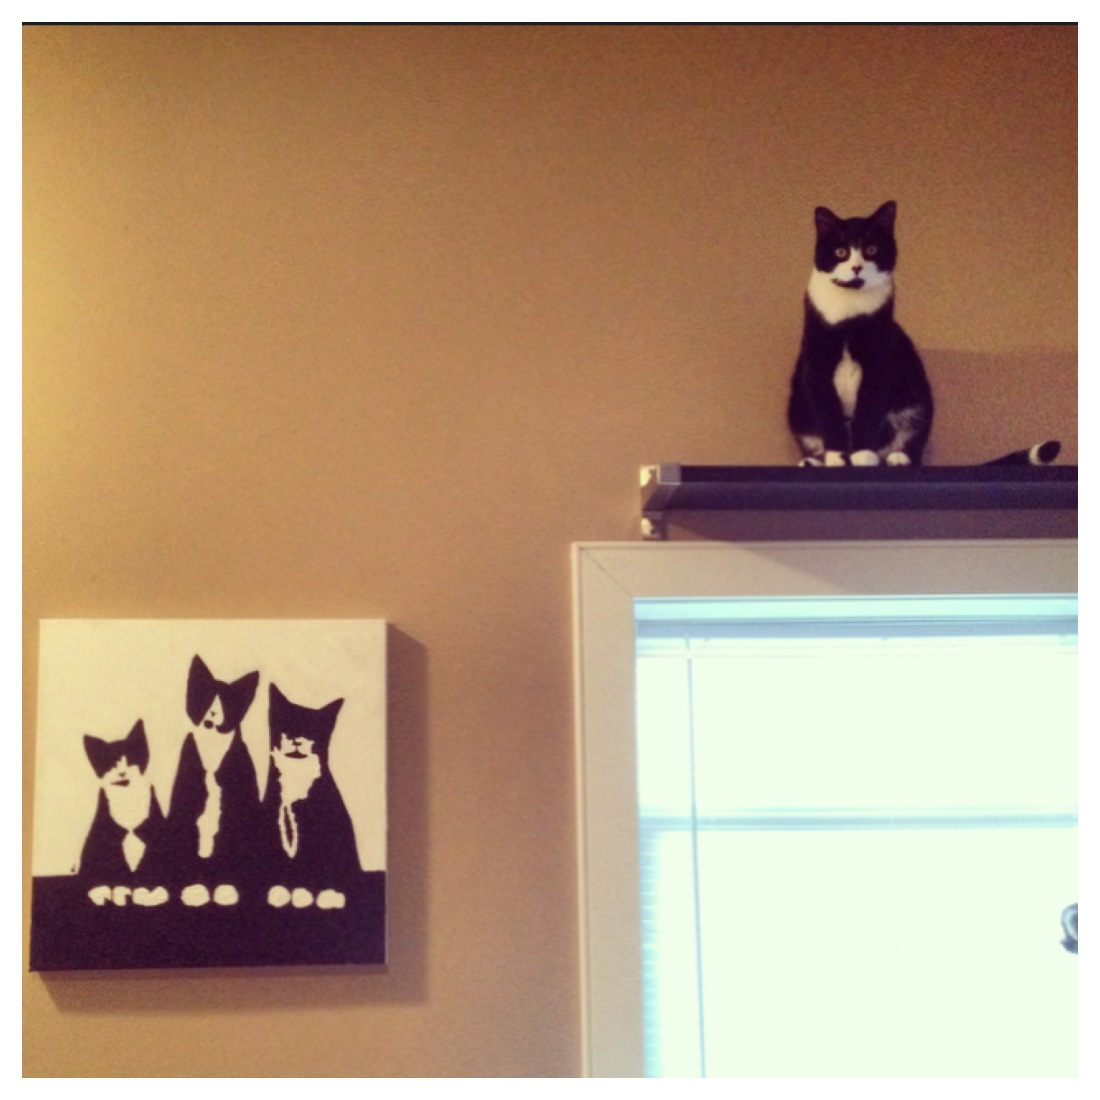 Tuxedo cat painting hanging next to shelf with cat sitting on it